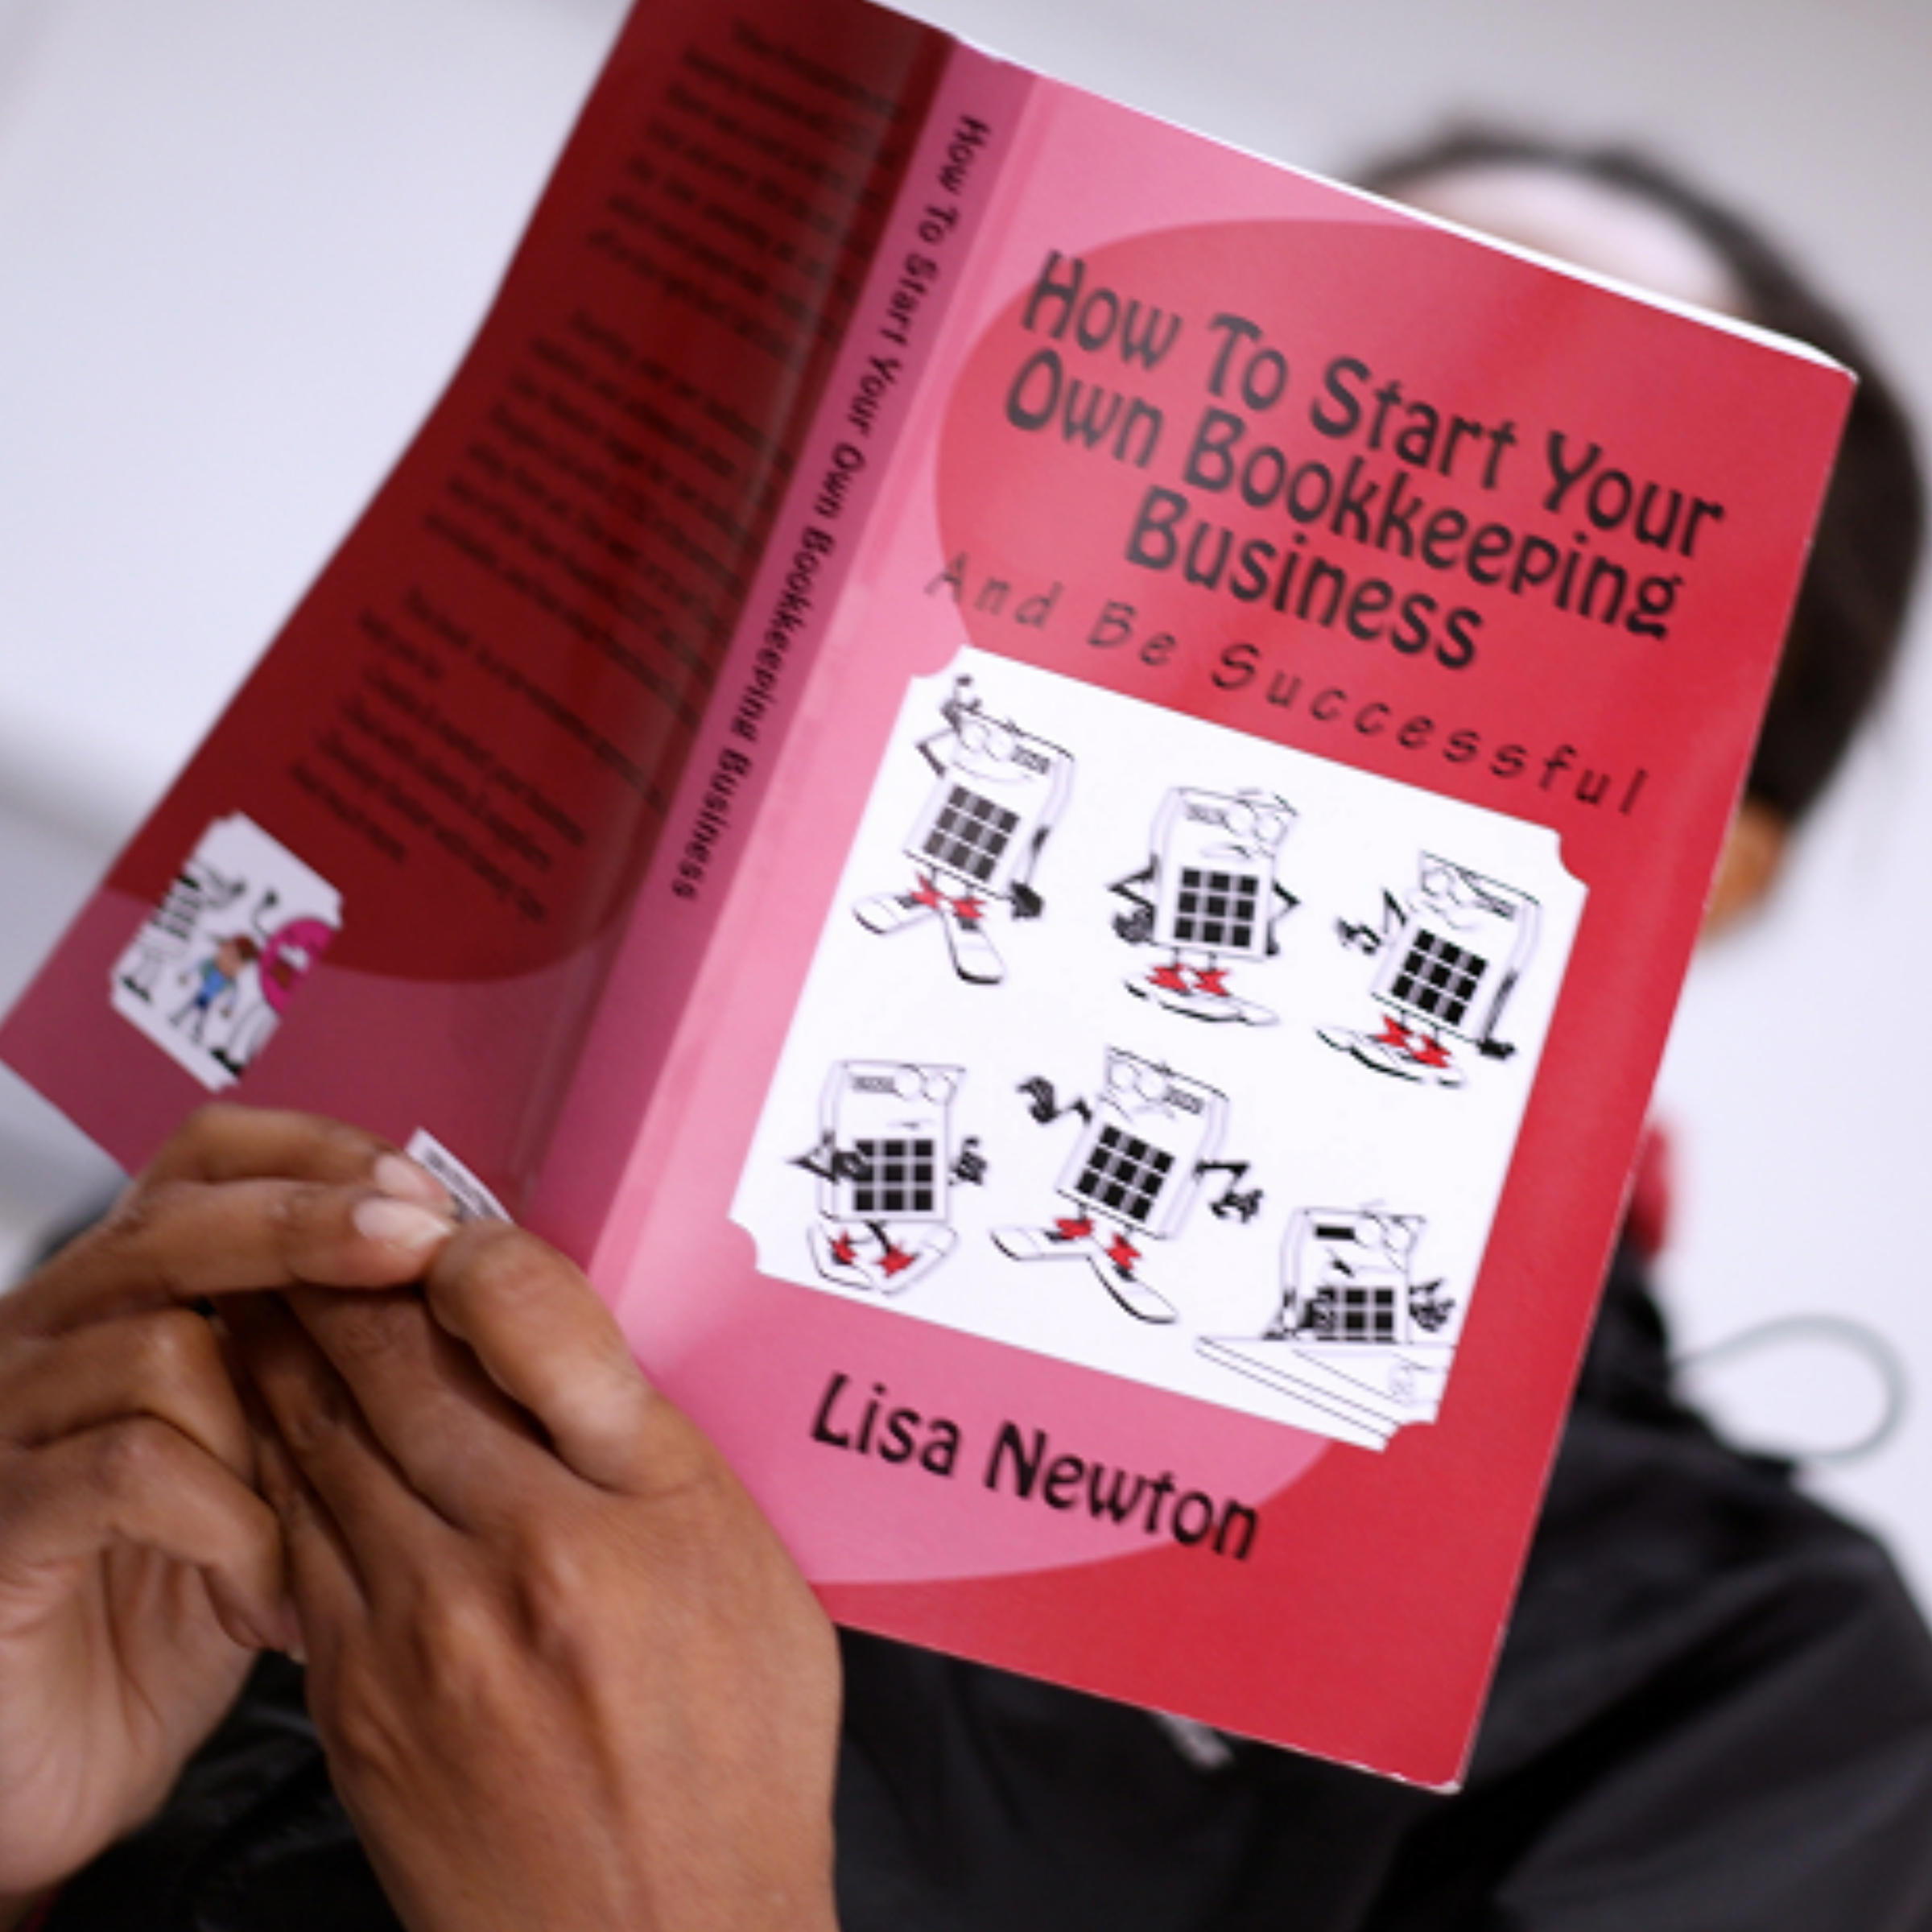 SQ - audio - How To Start Your Own BK Business Boo